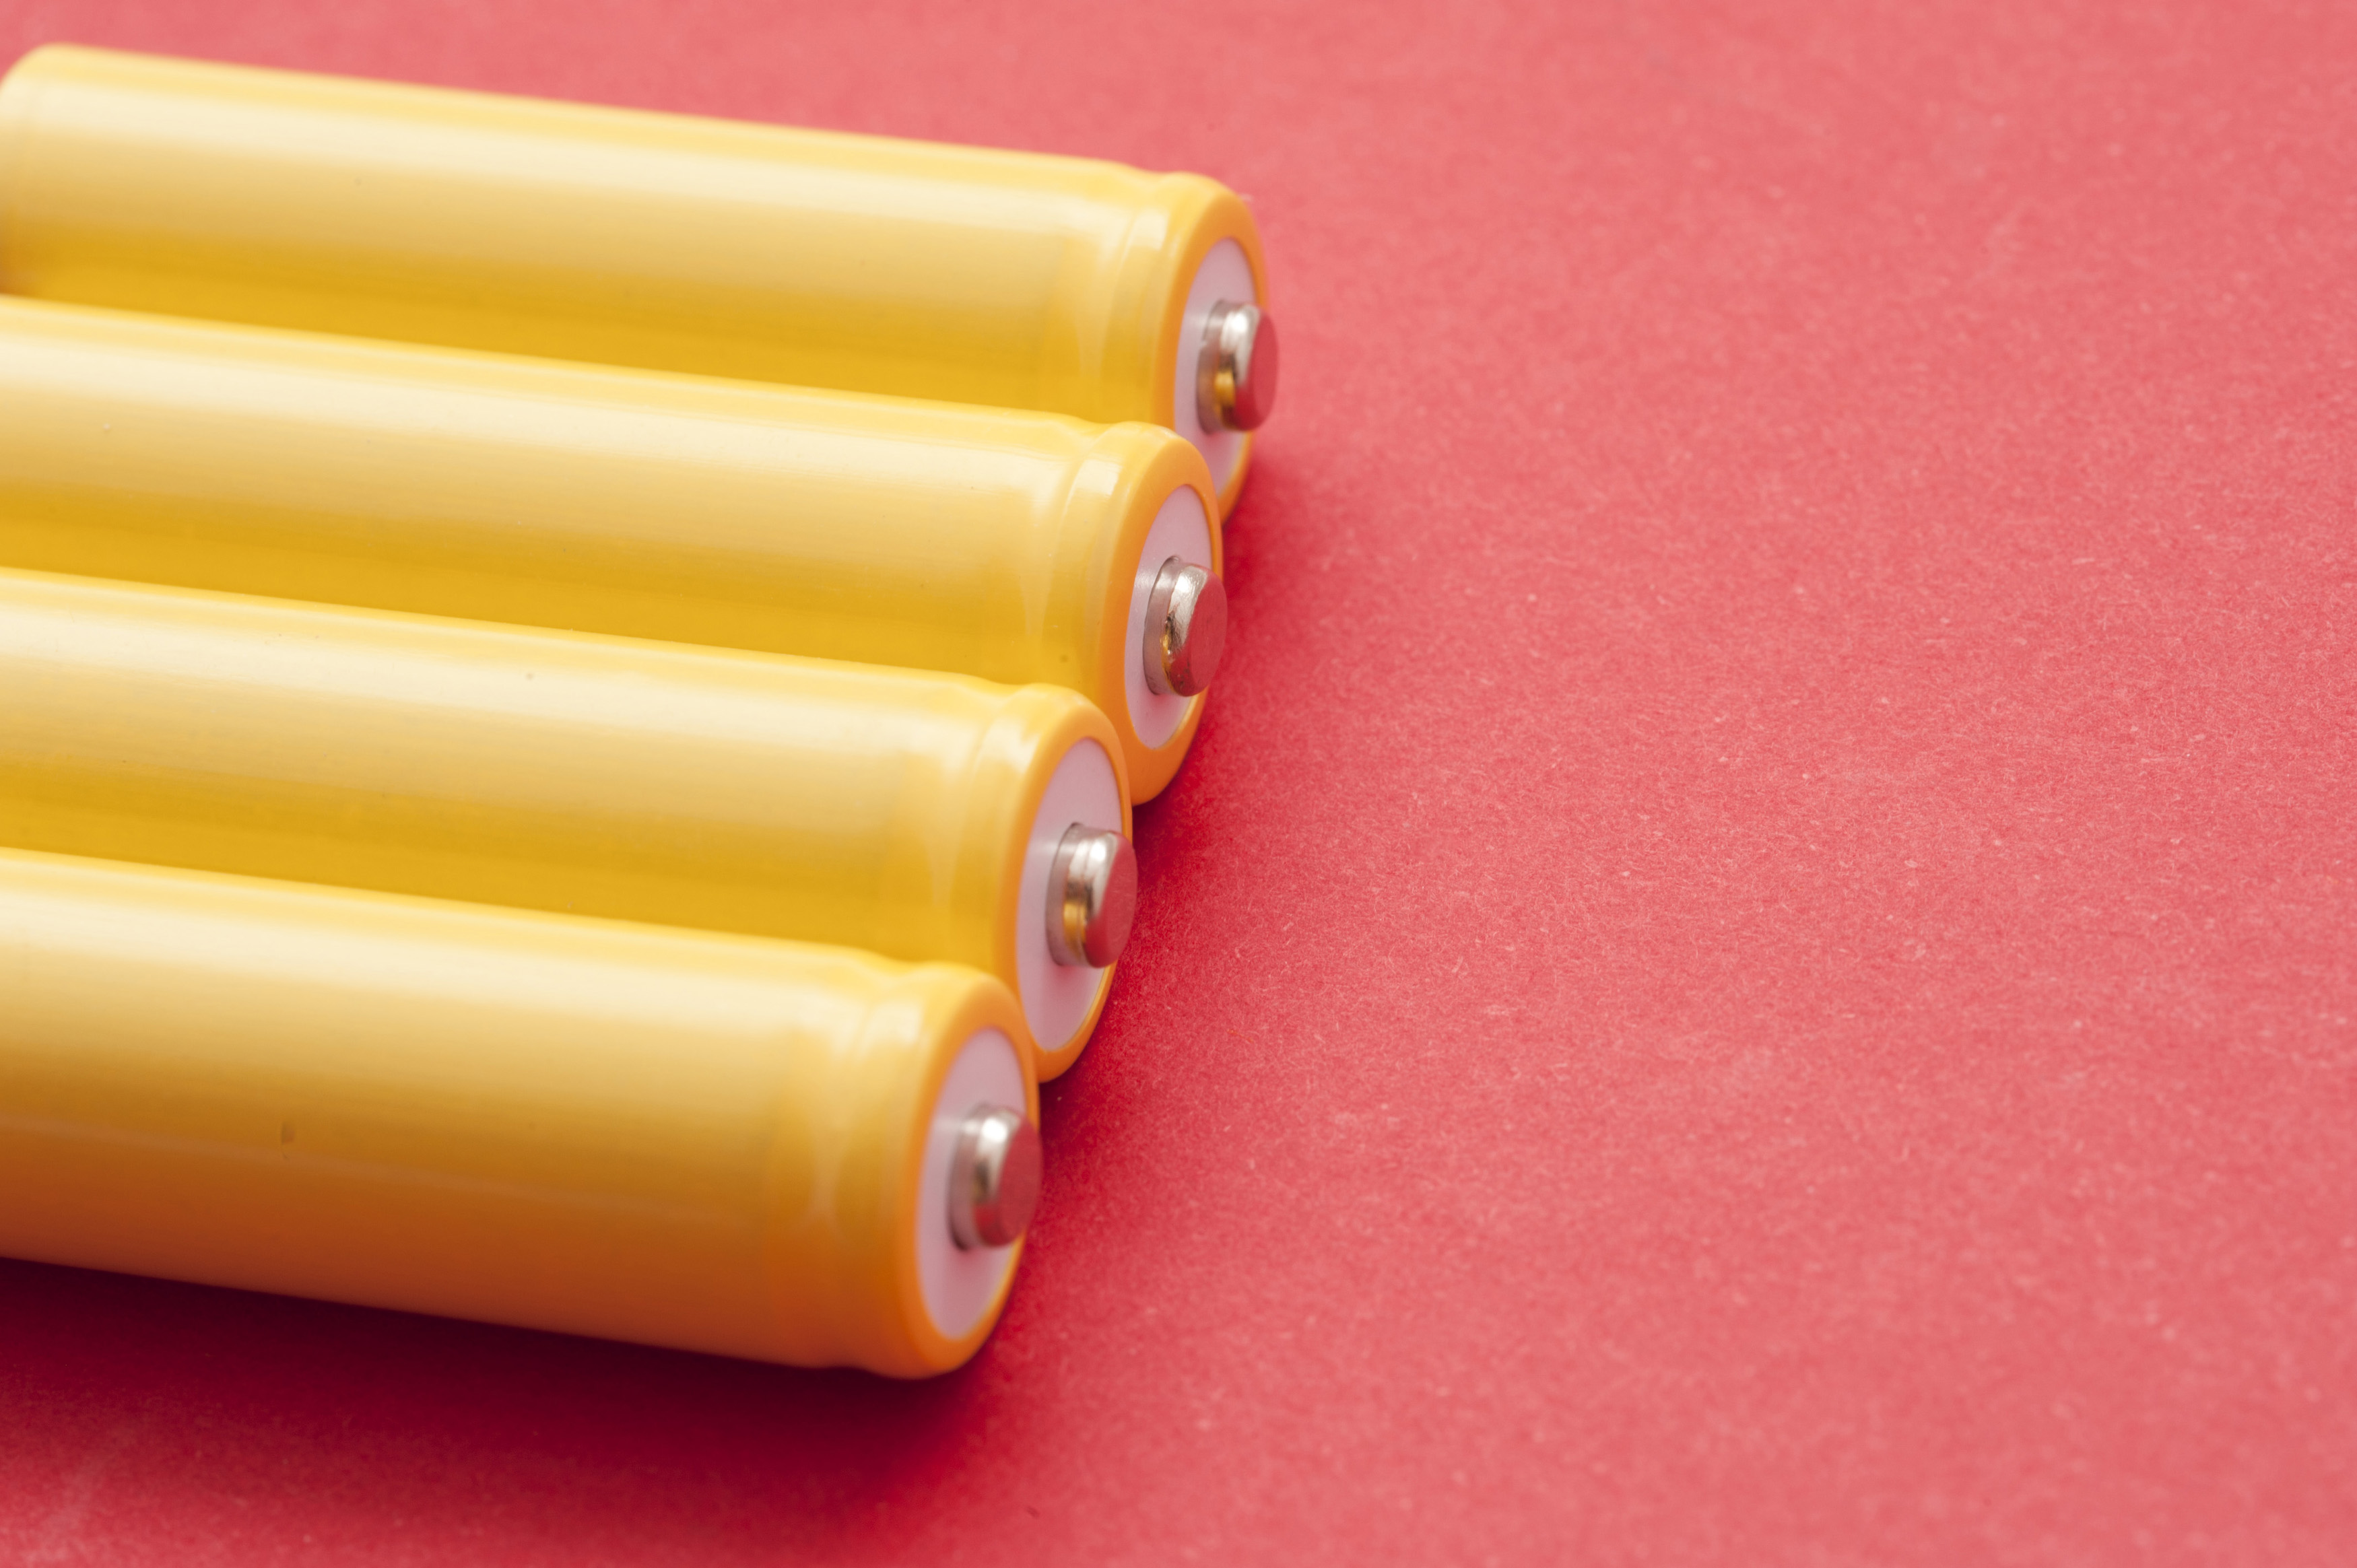 Set of four yellow unlabeled batteries lying in a row on a red background with copyspace